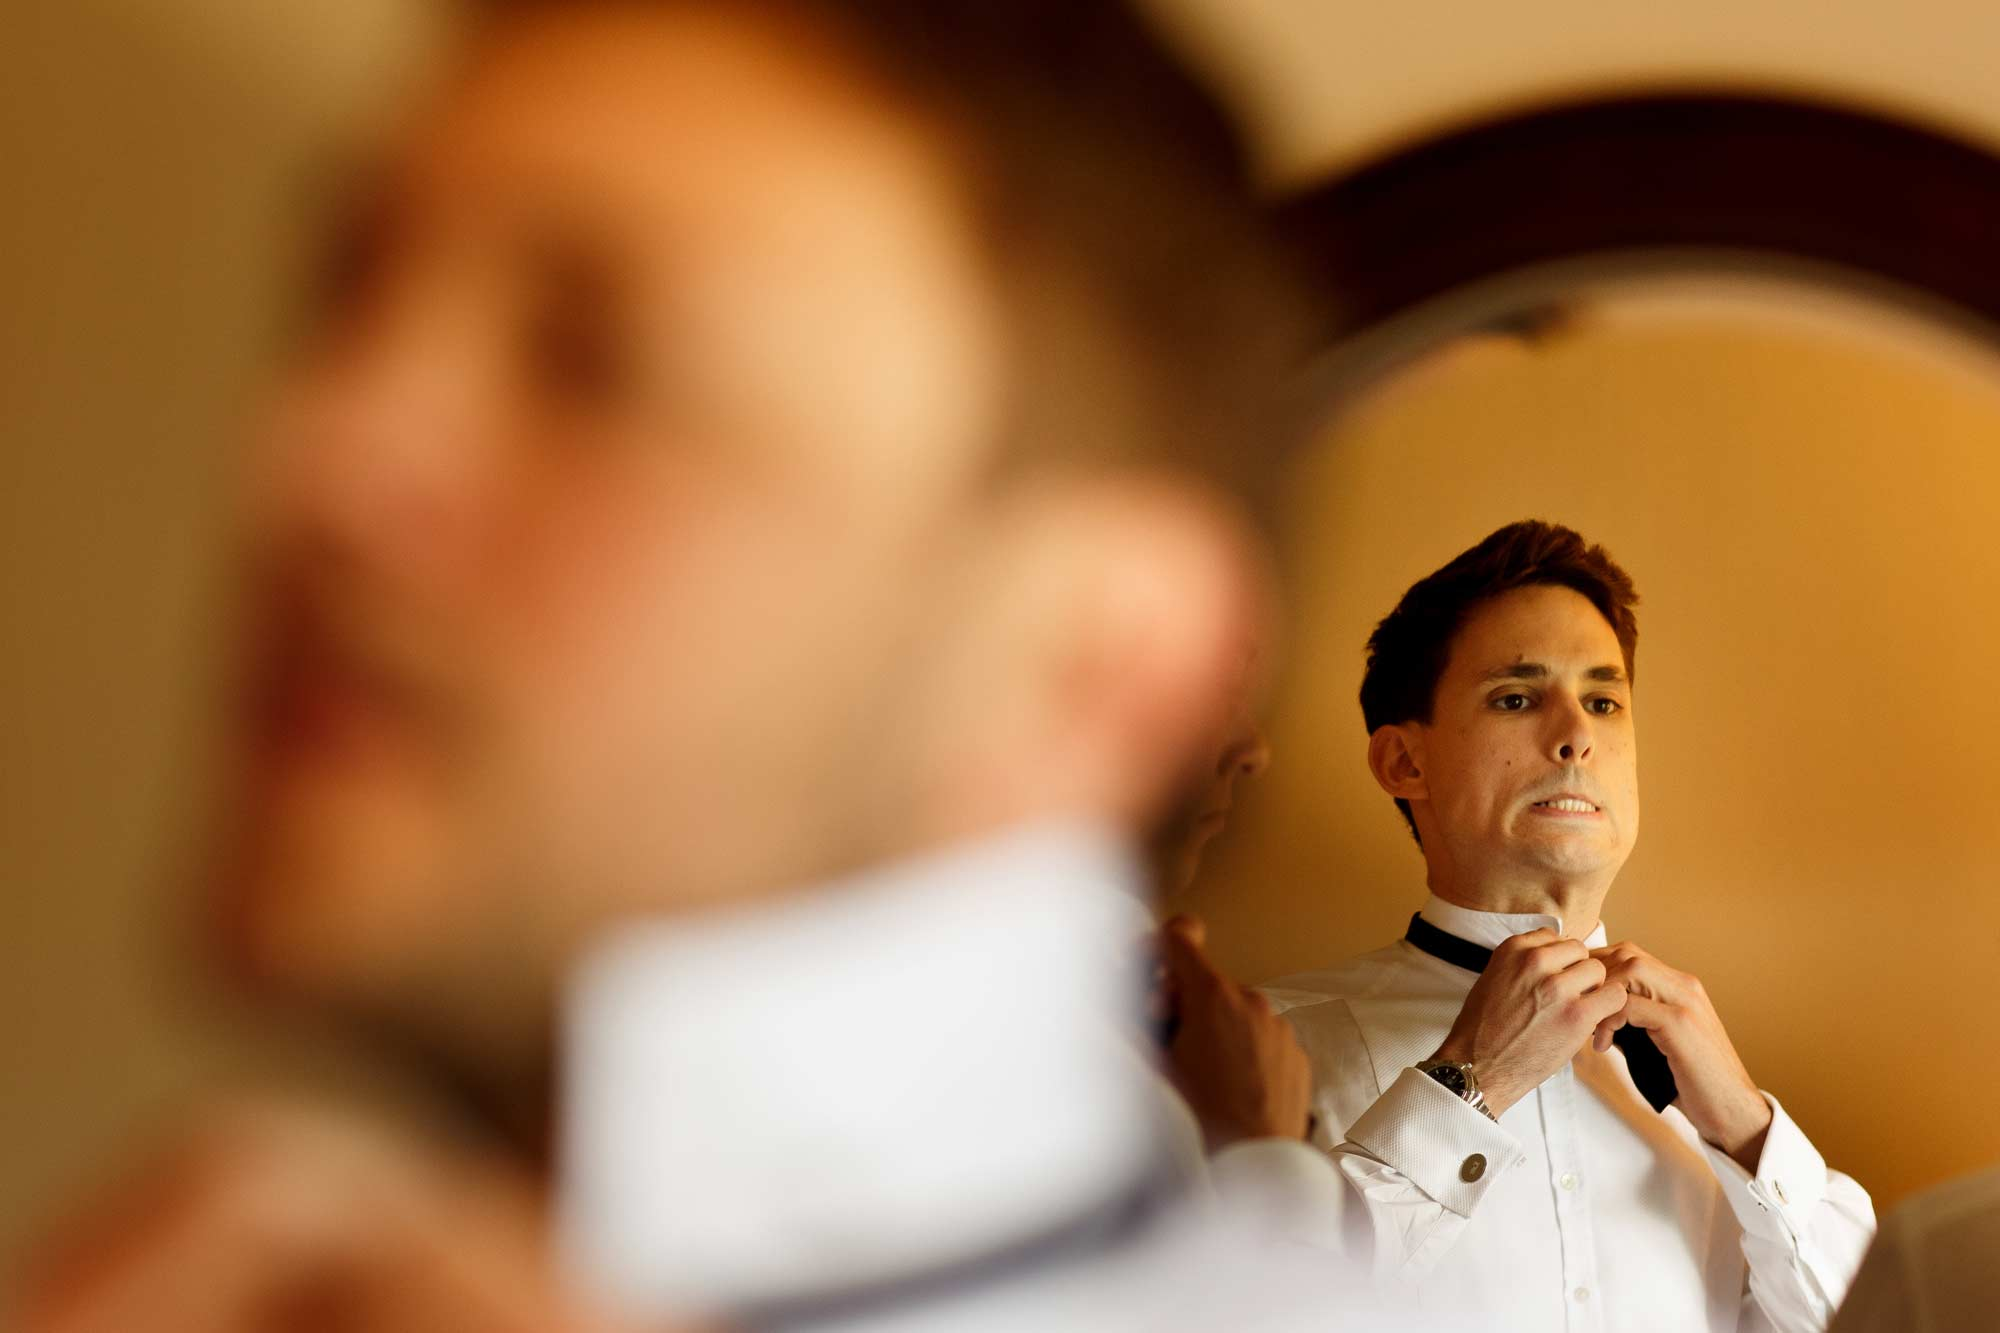 Groom struggling to fasten his bow tie facing a mirror